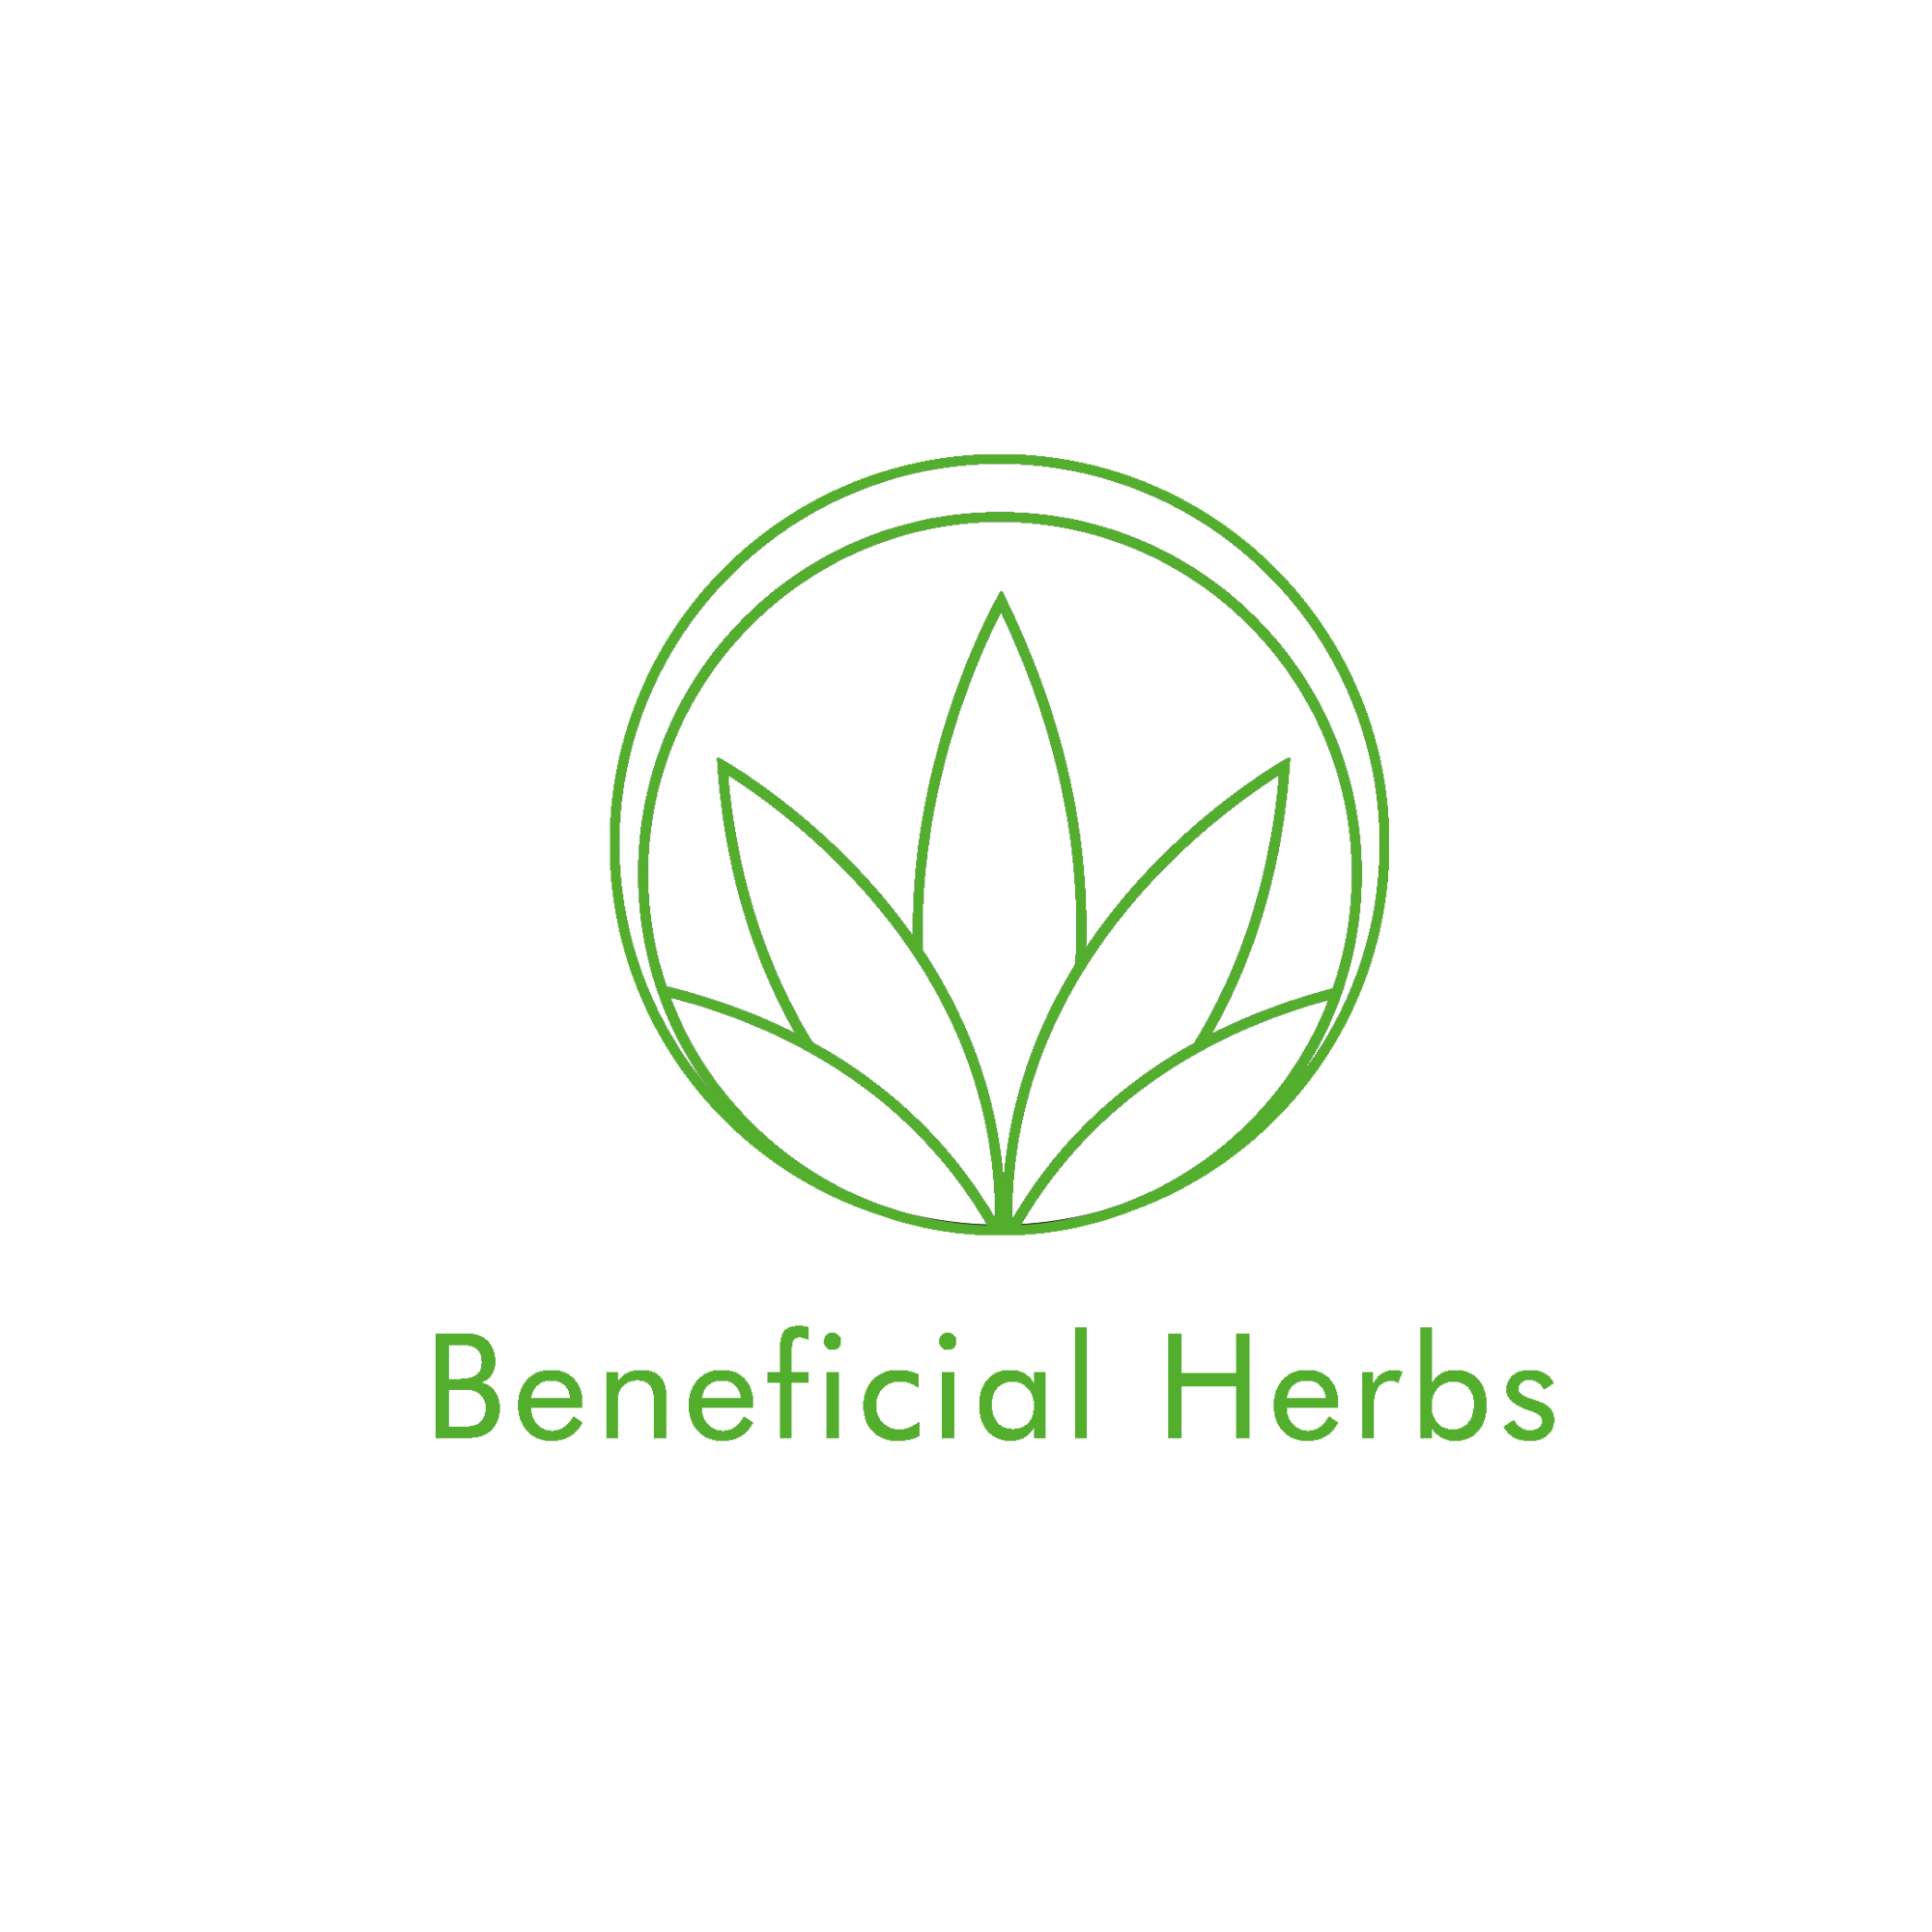 beneficial herbs logo